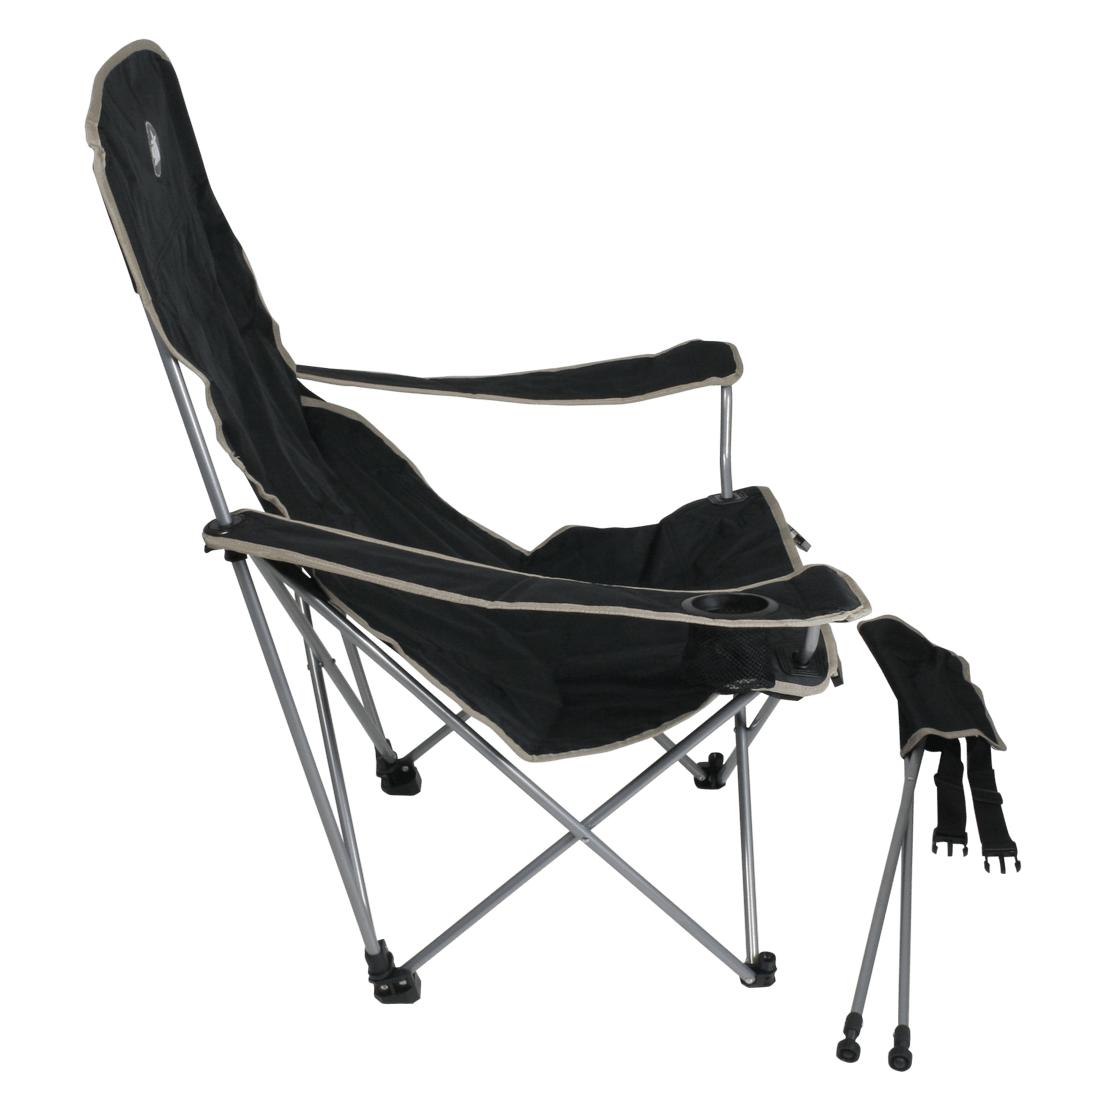 bag chair with footrest ergonomic nhs 10t quickfold plus mobile camping